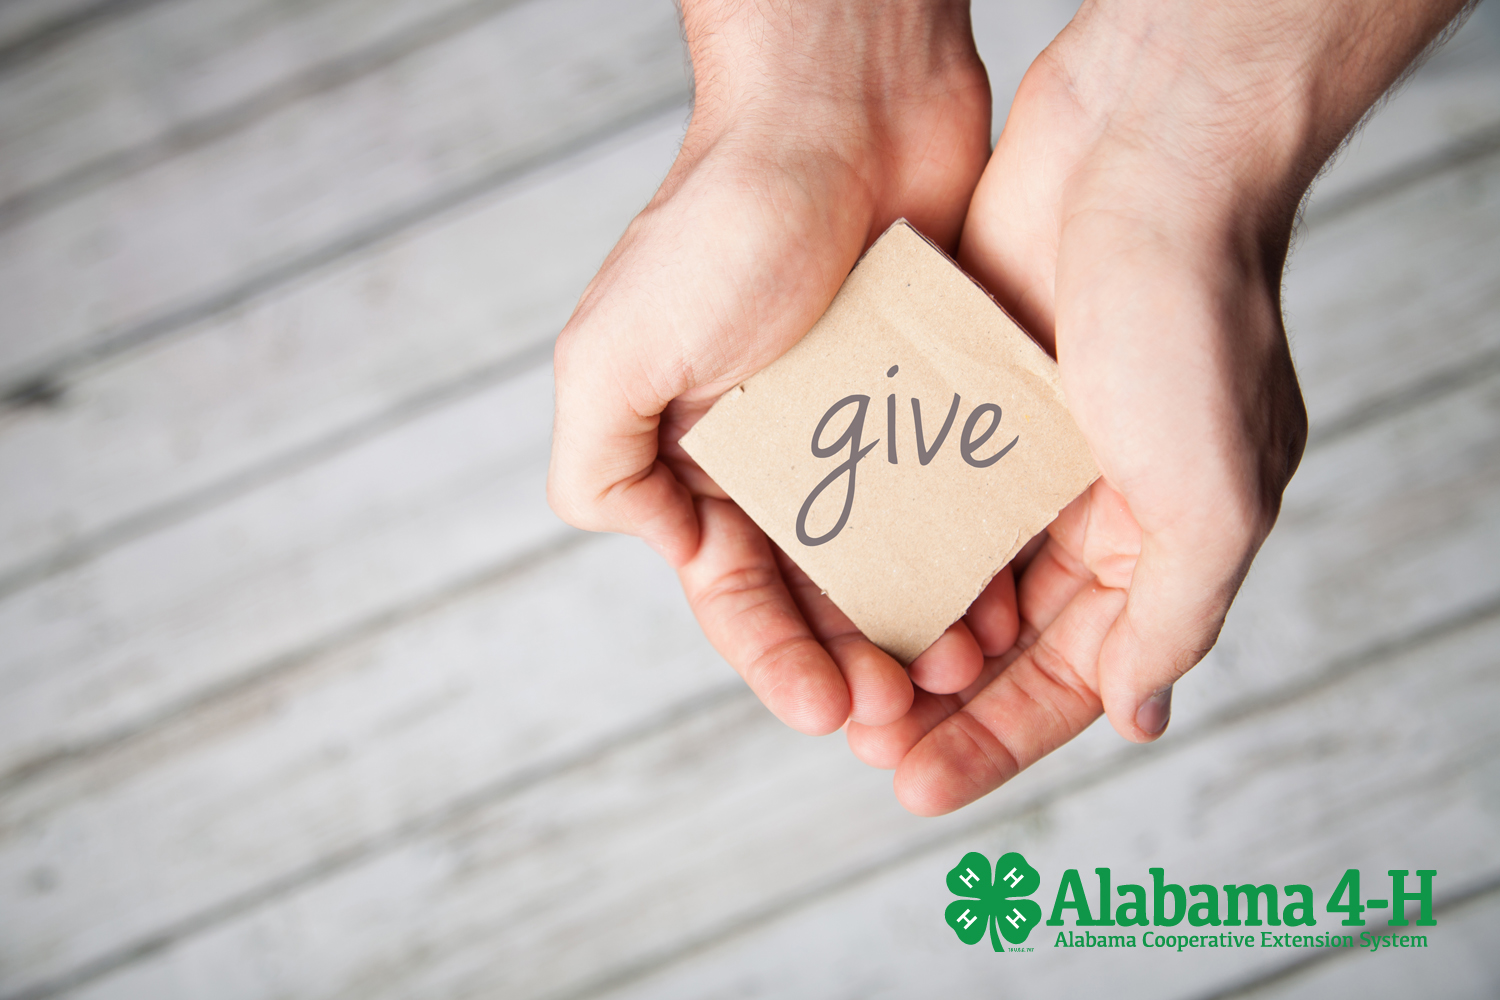 Alabama 4-H Foundation gifts-in-kind; person holding out hands